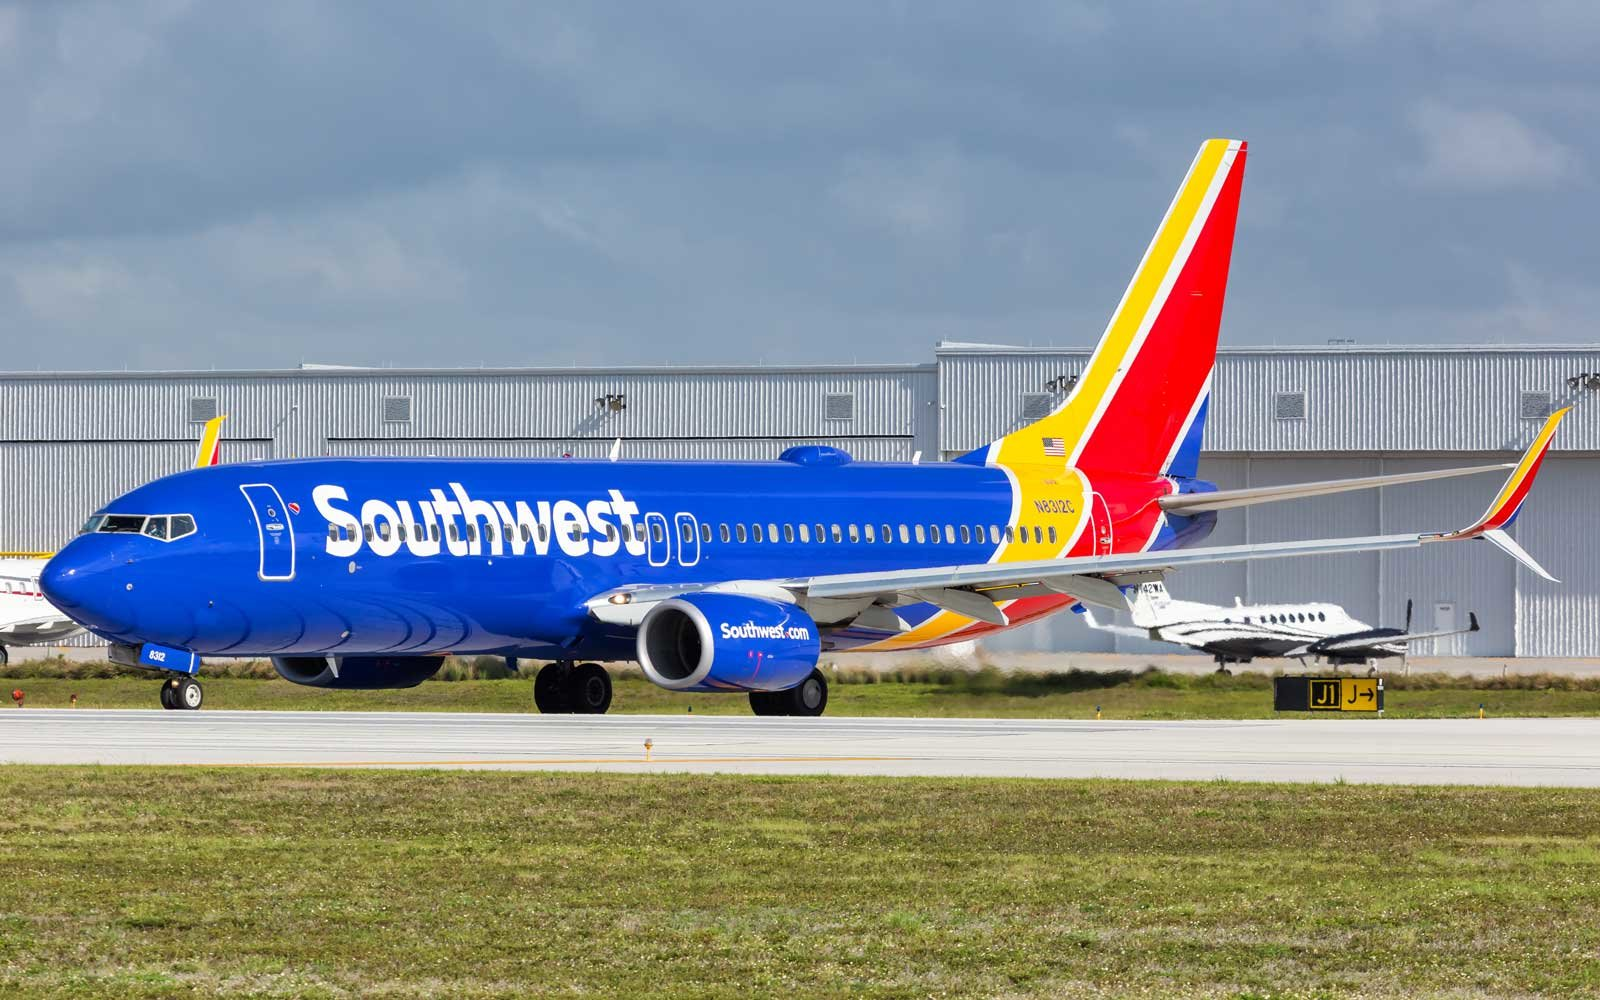 NTSB recommends changes to Boeing engine covers after fatal Southwest accident